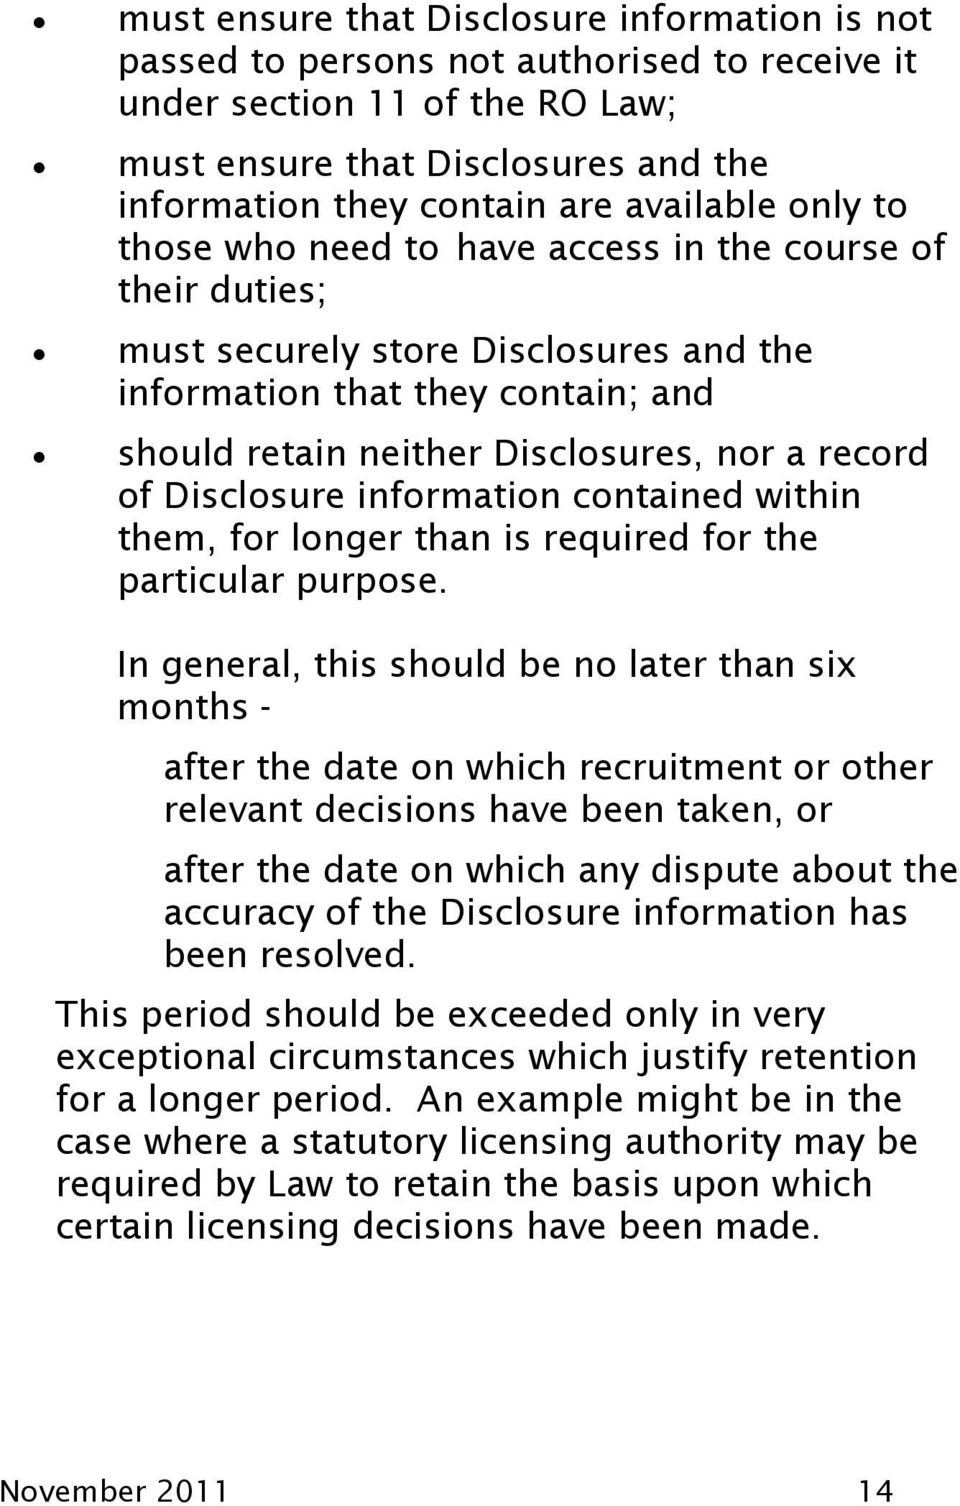 record of Disclosure information contained within them, for longer than is required for the particular purpose.